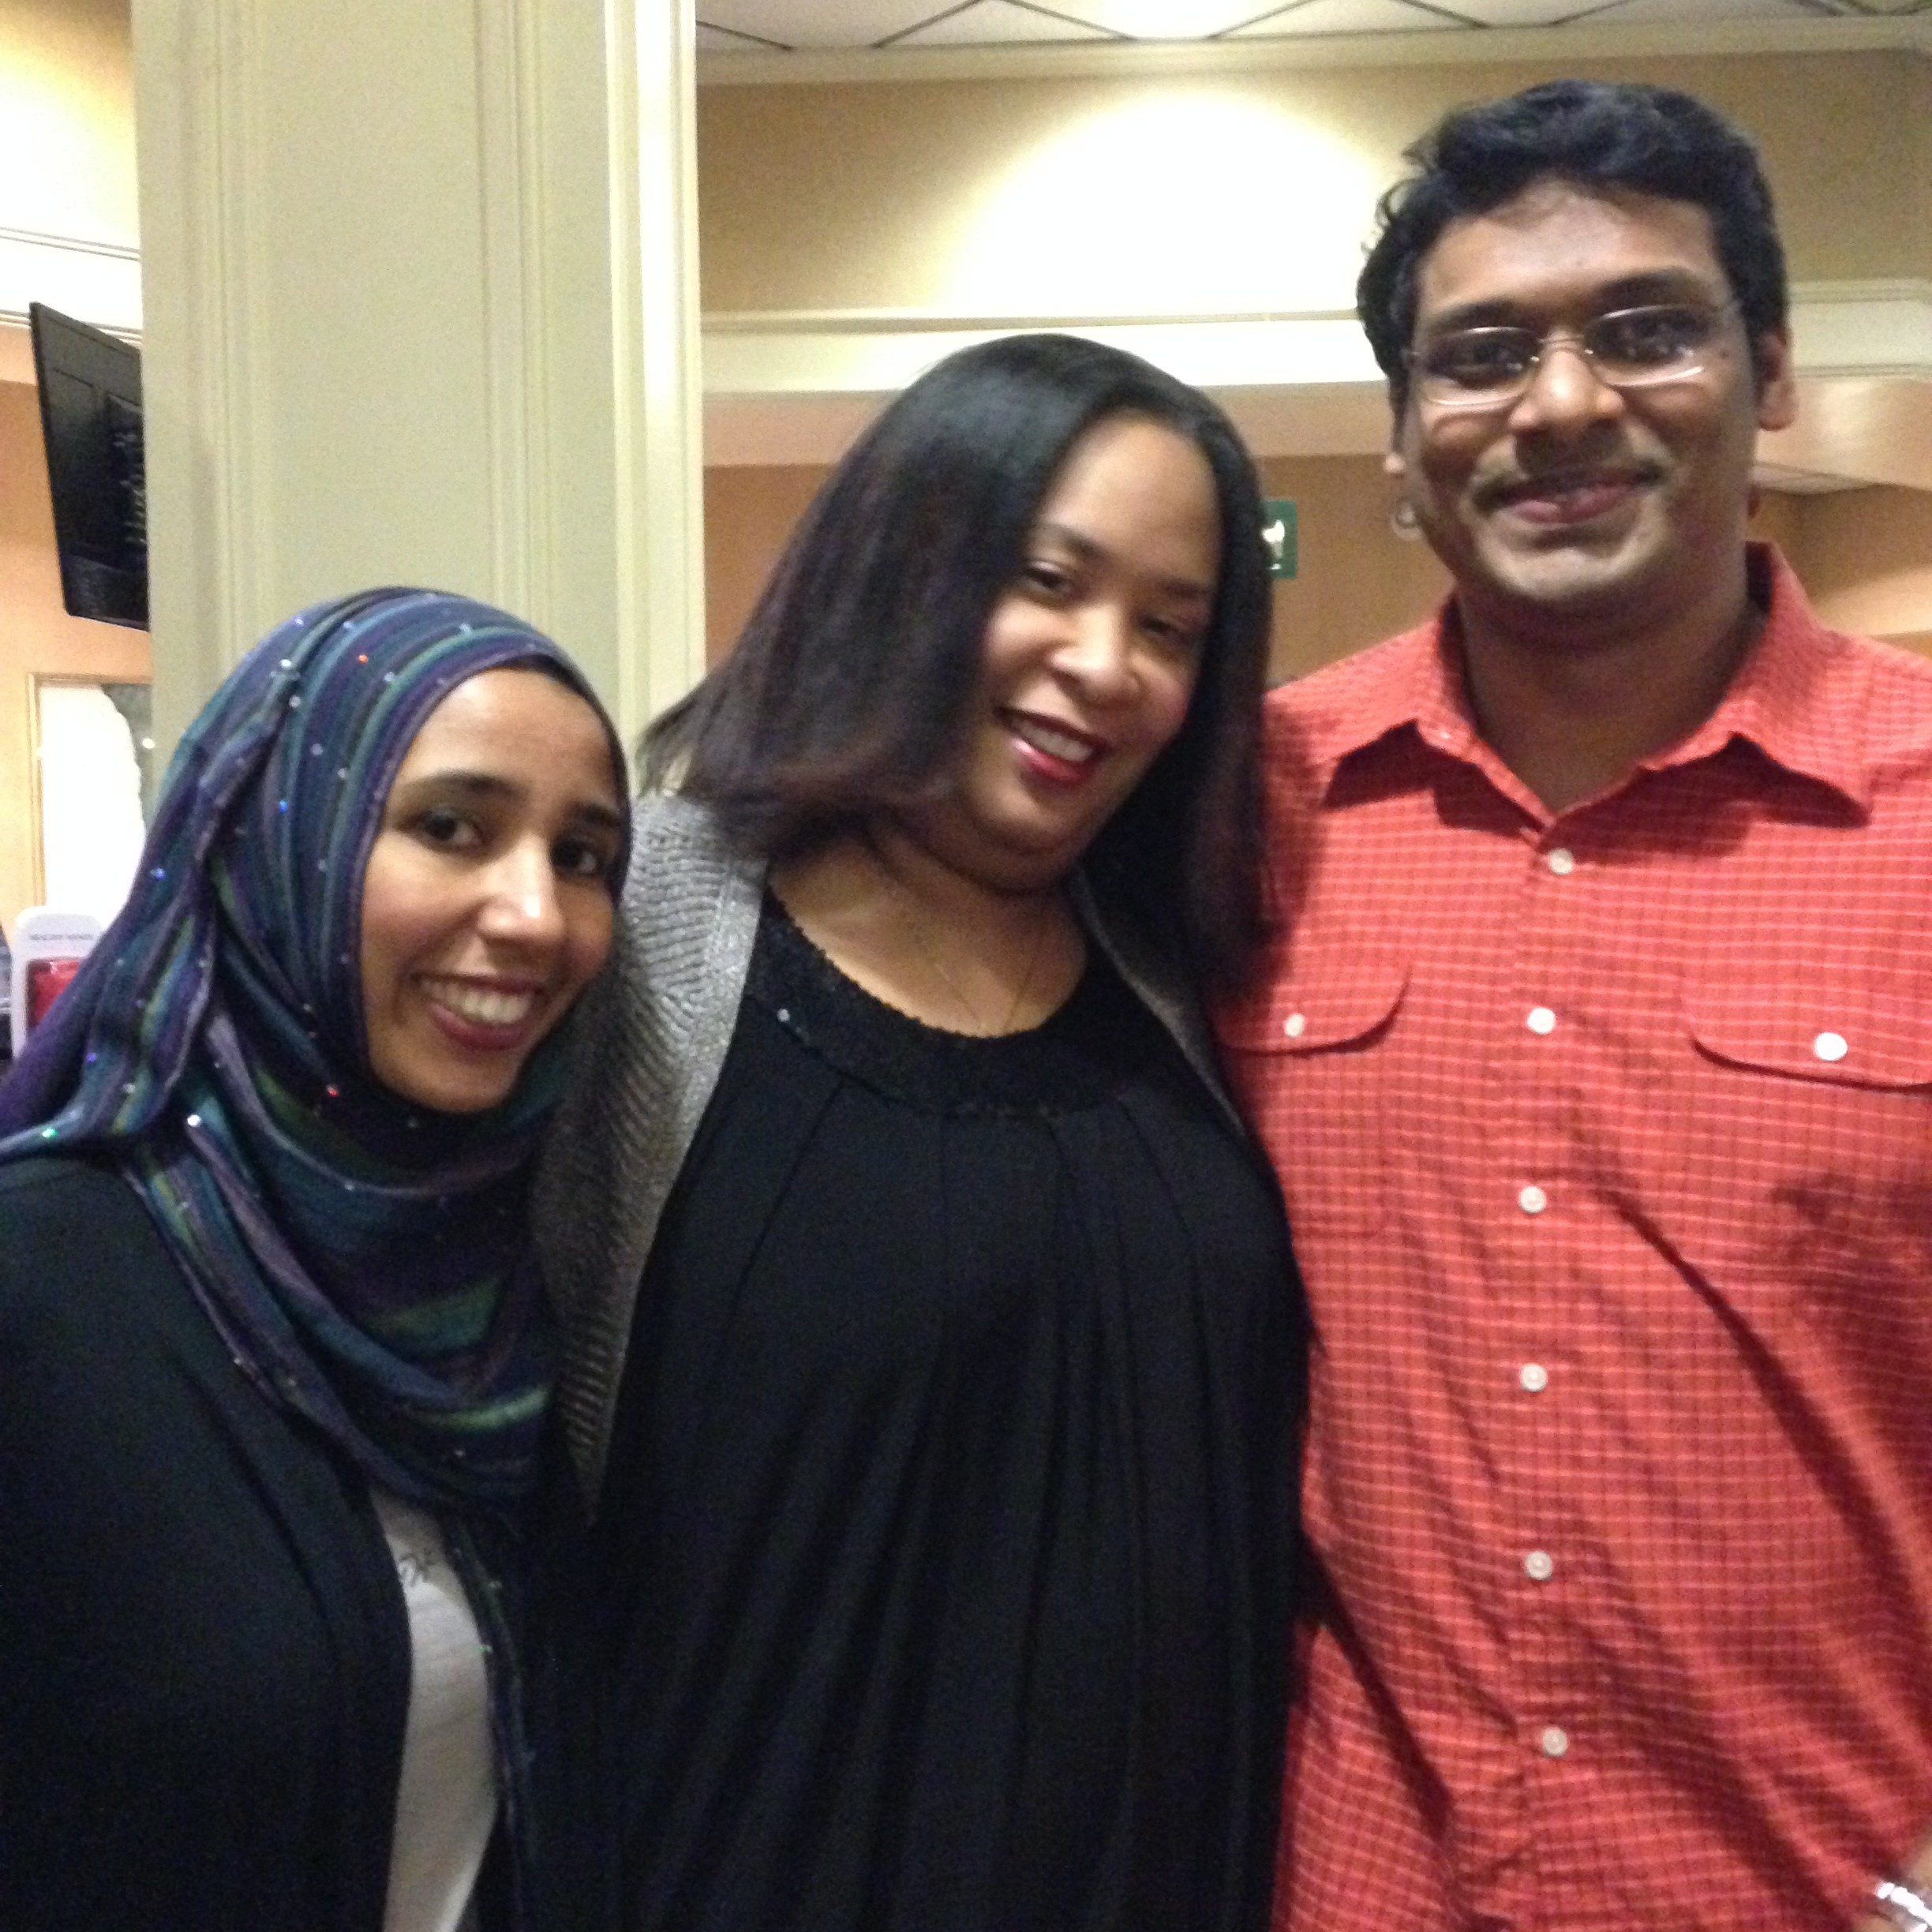 Aisha Khan, Trevanne Mathews, Hew Avinash